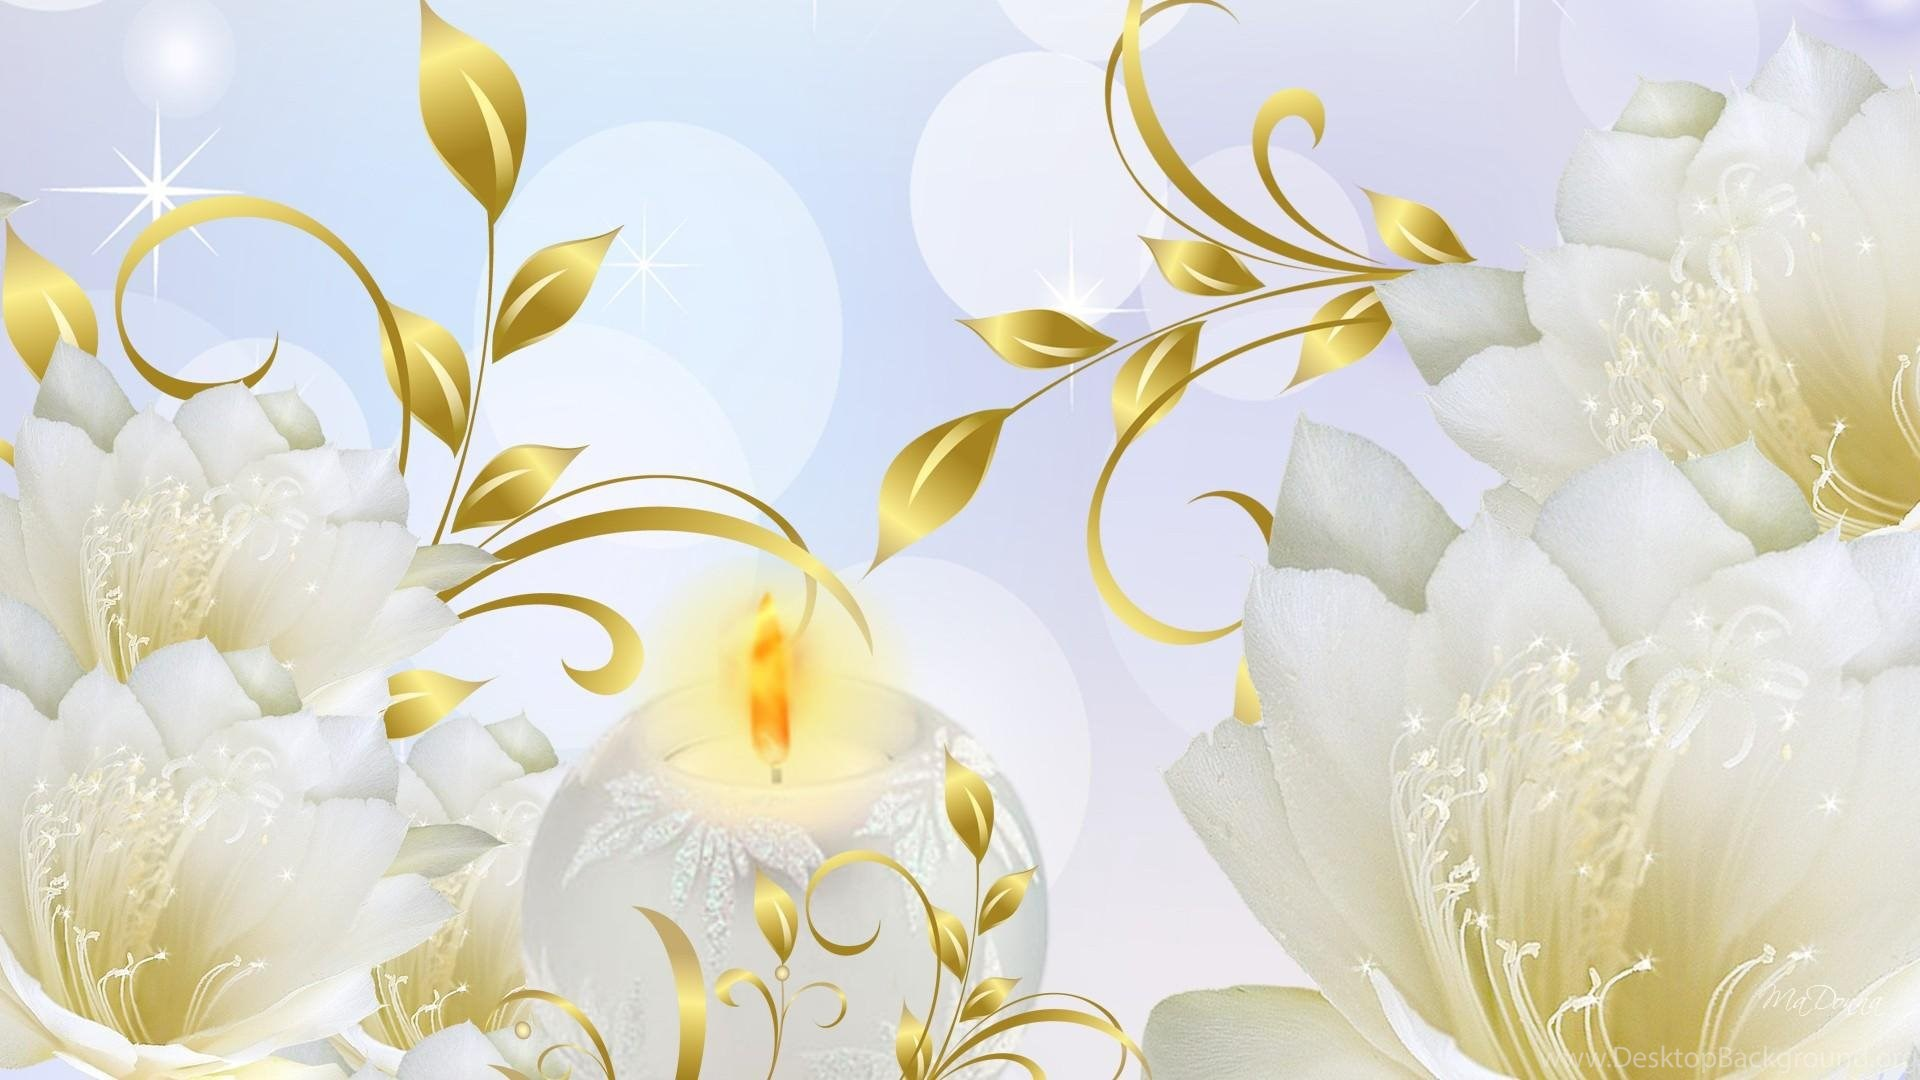 Justpict Com Gold Flowers Wallpapers Desktop Background